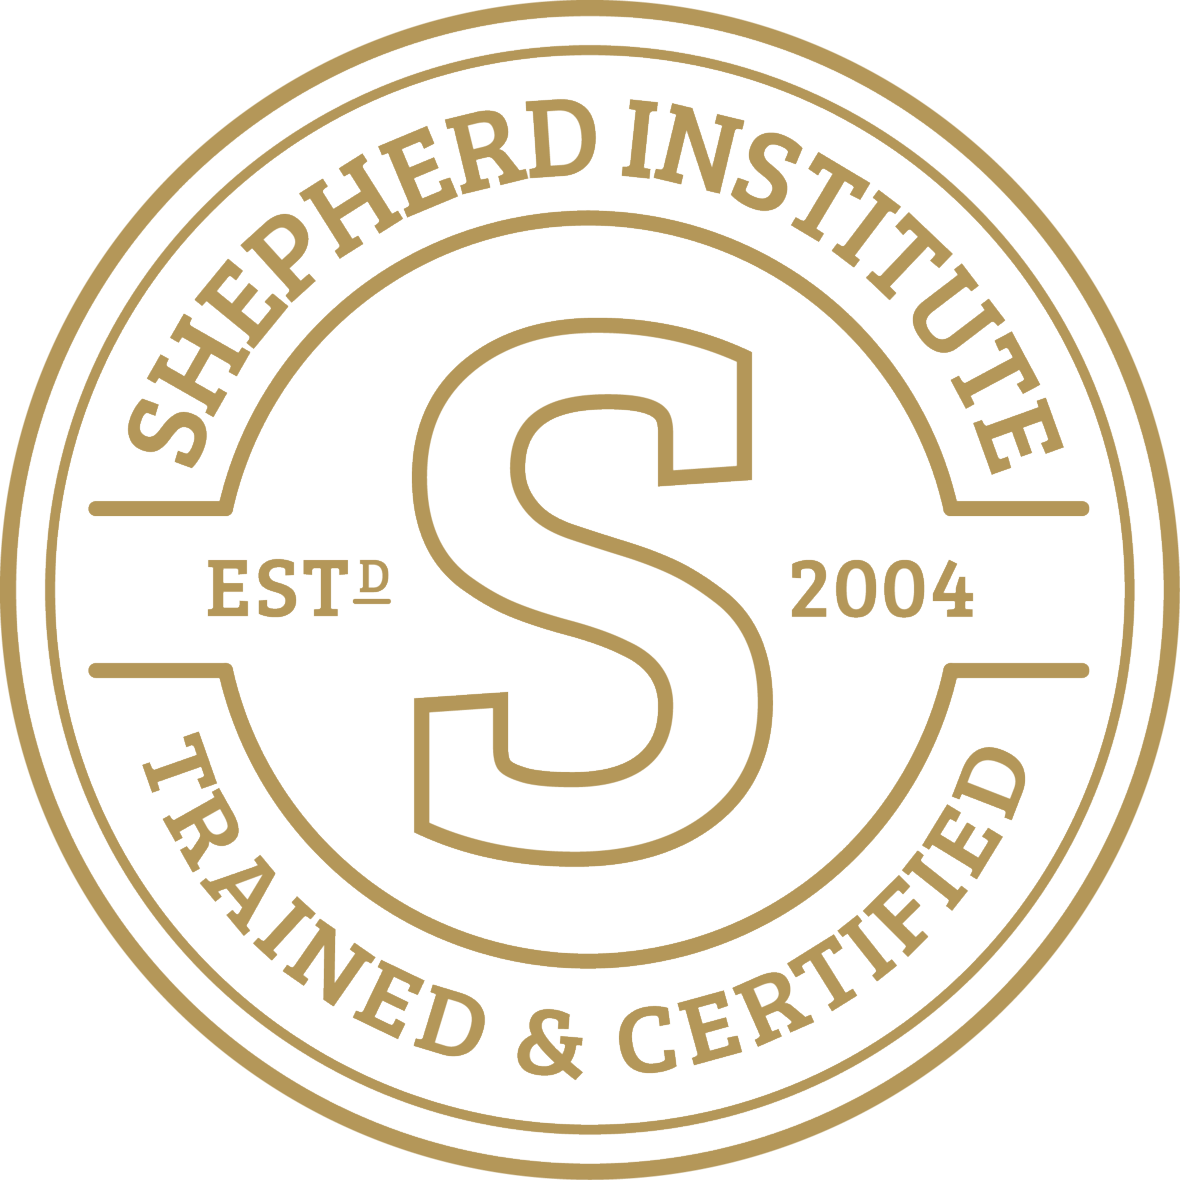 Shepherd Method Certified